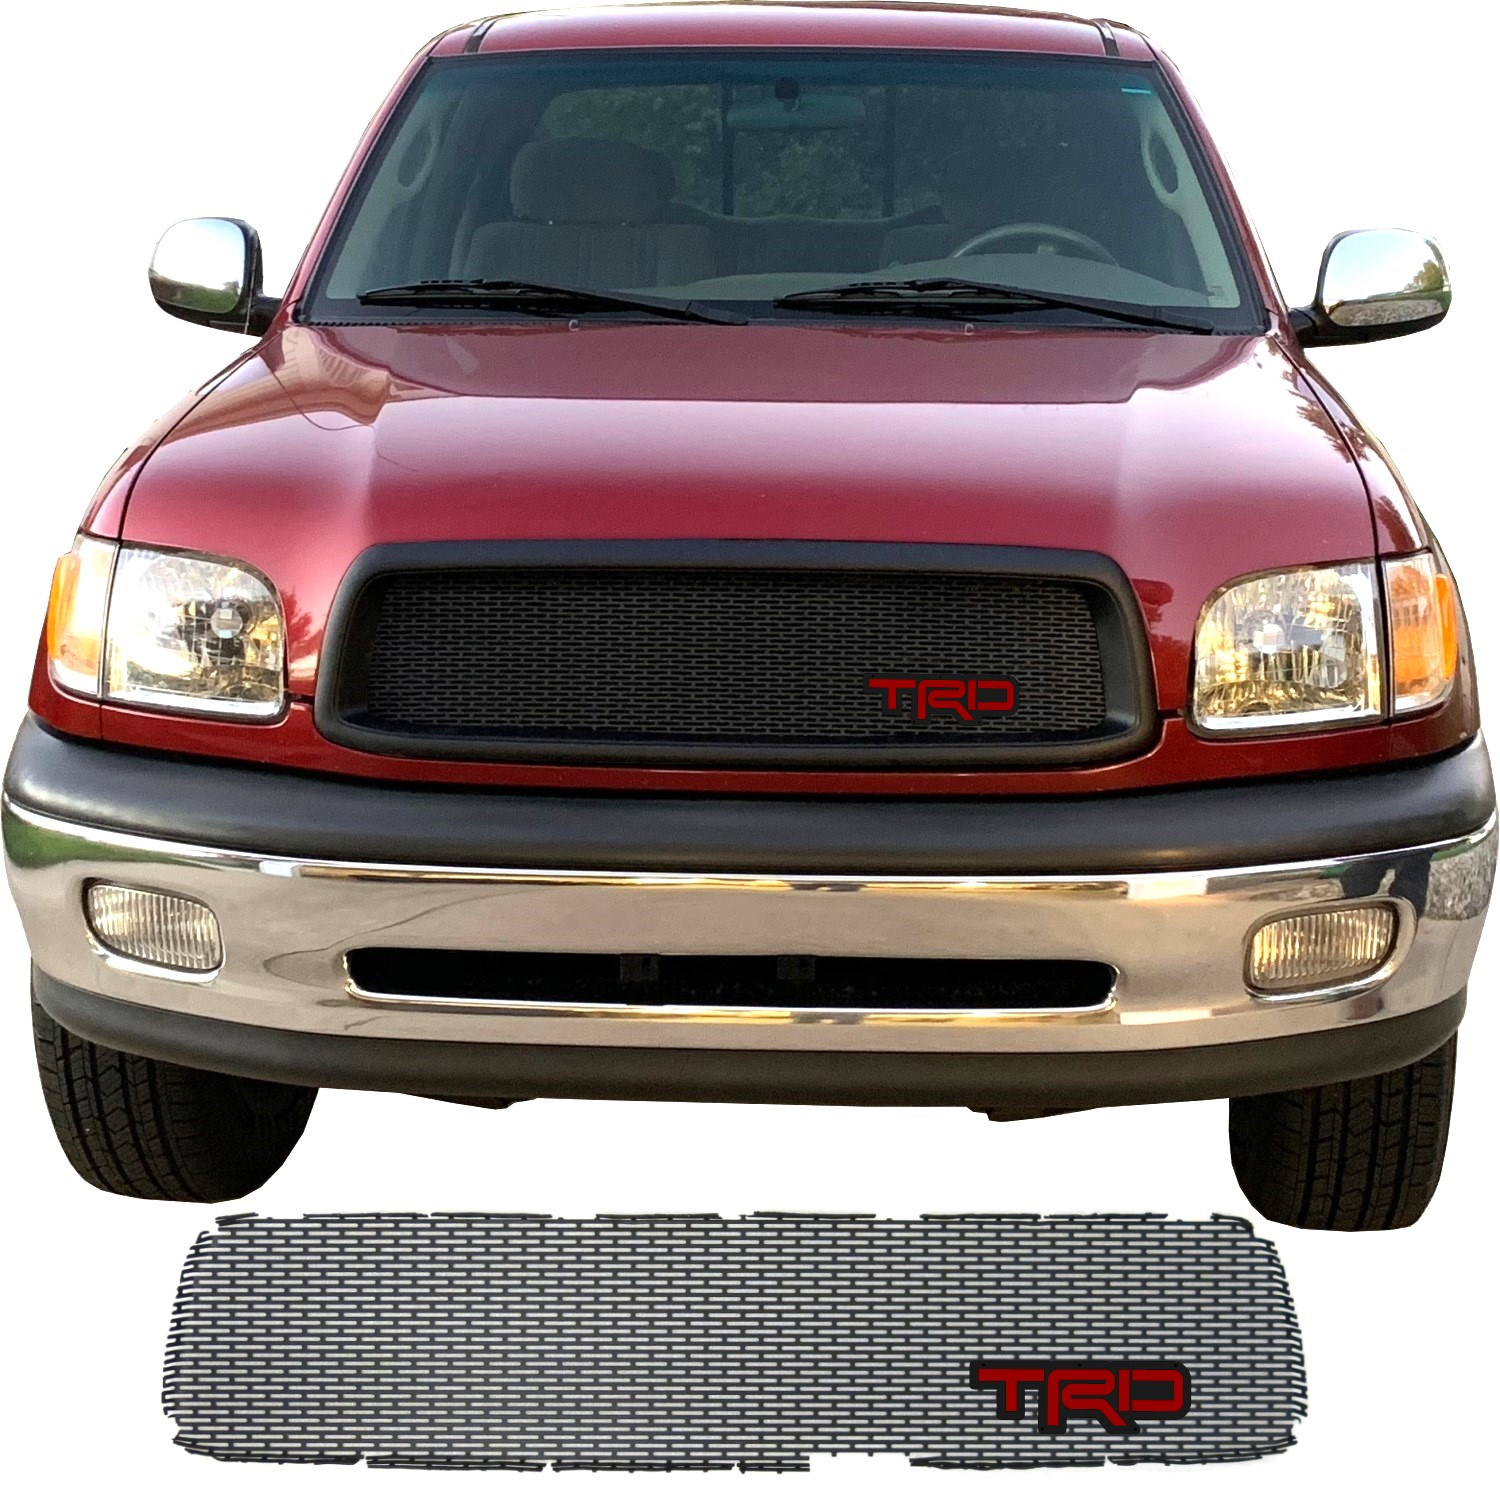 2000-02 Toyota Tundra Grill Mesh with TRD Emblem